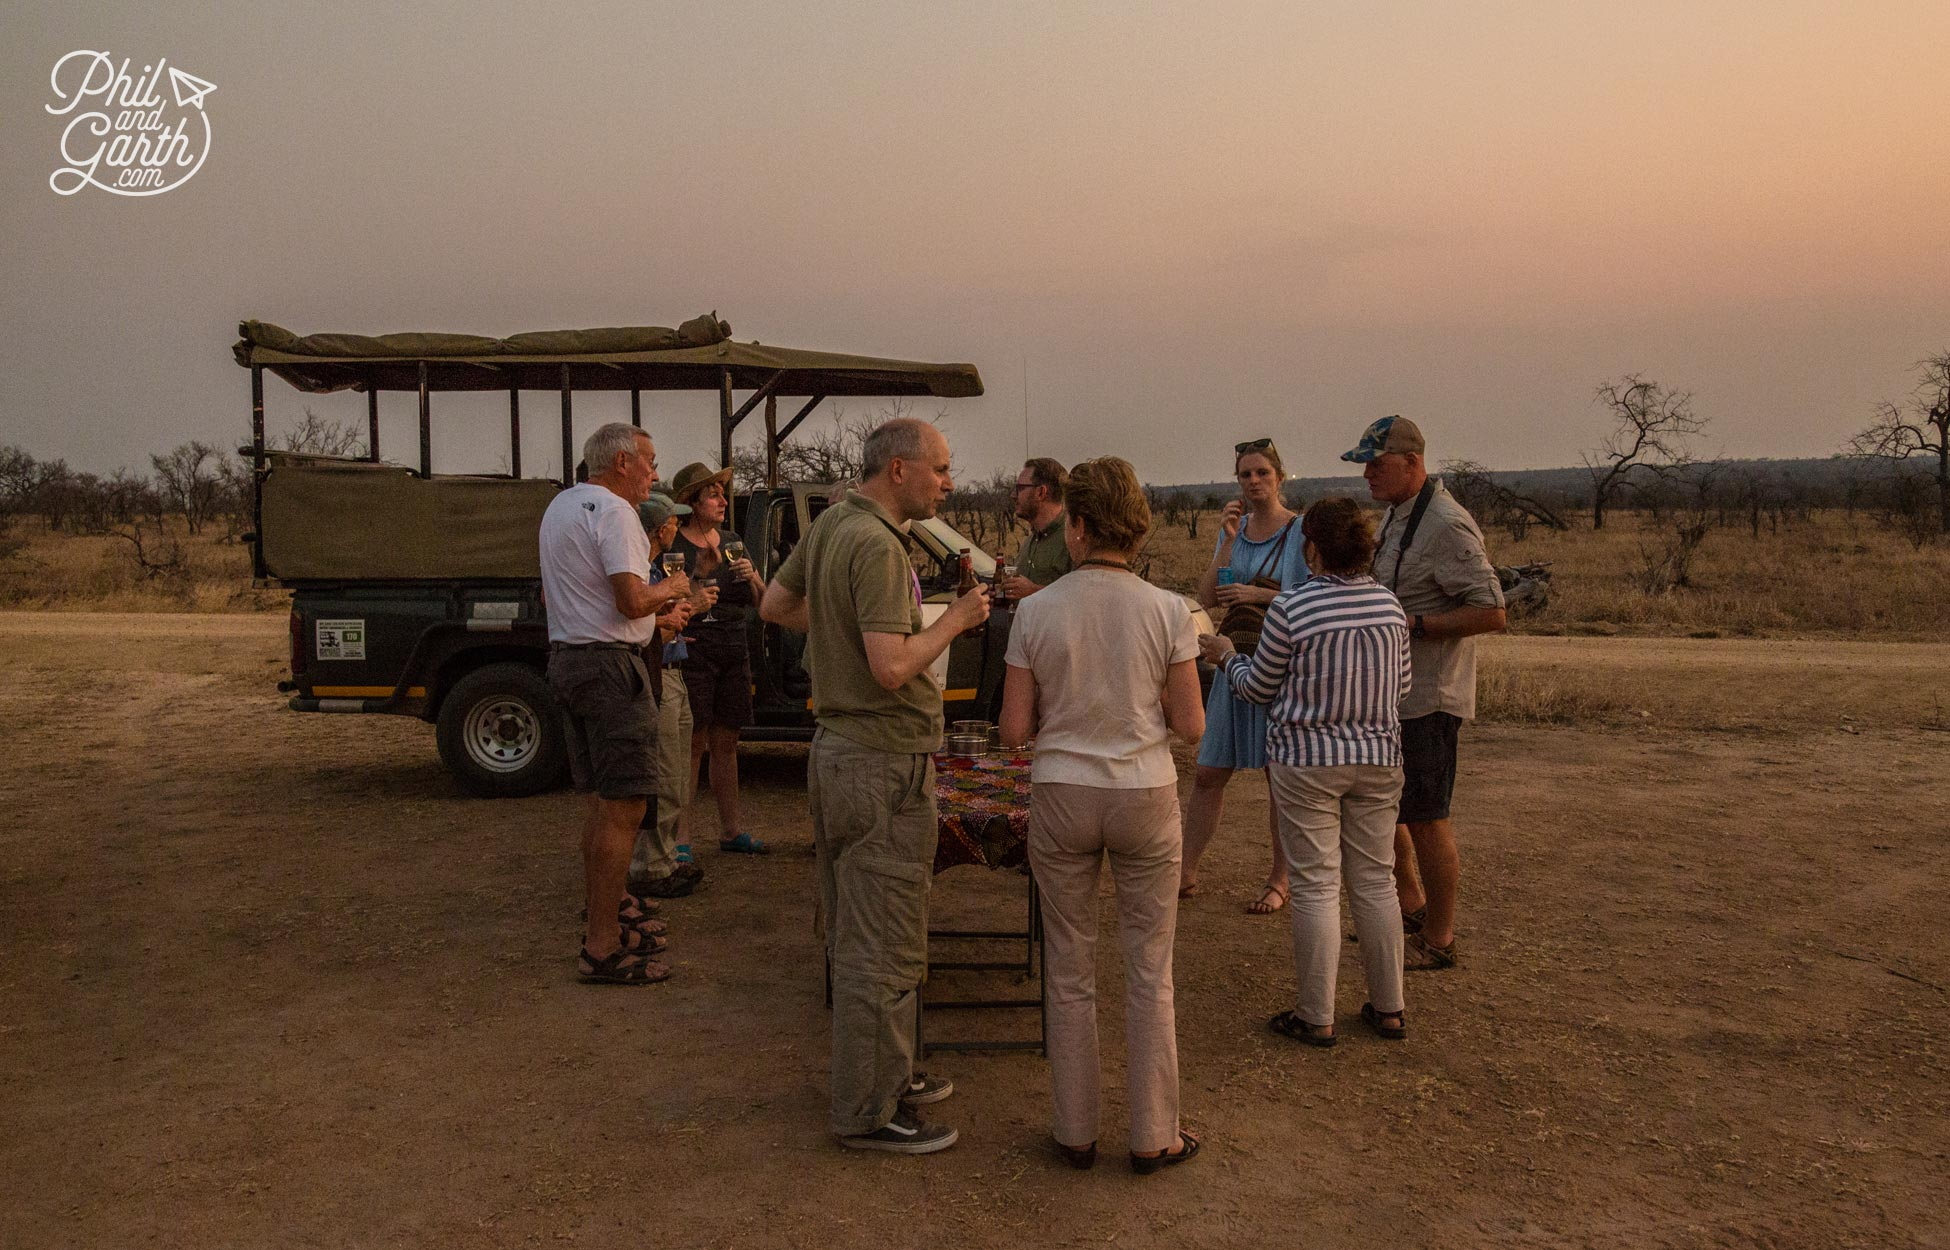 Beers, wine and snacks as the sun finally sets in Kruger